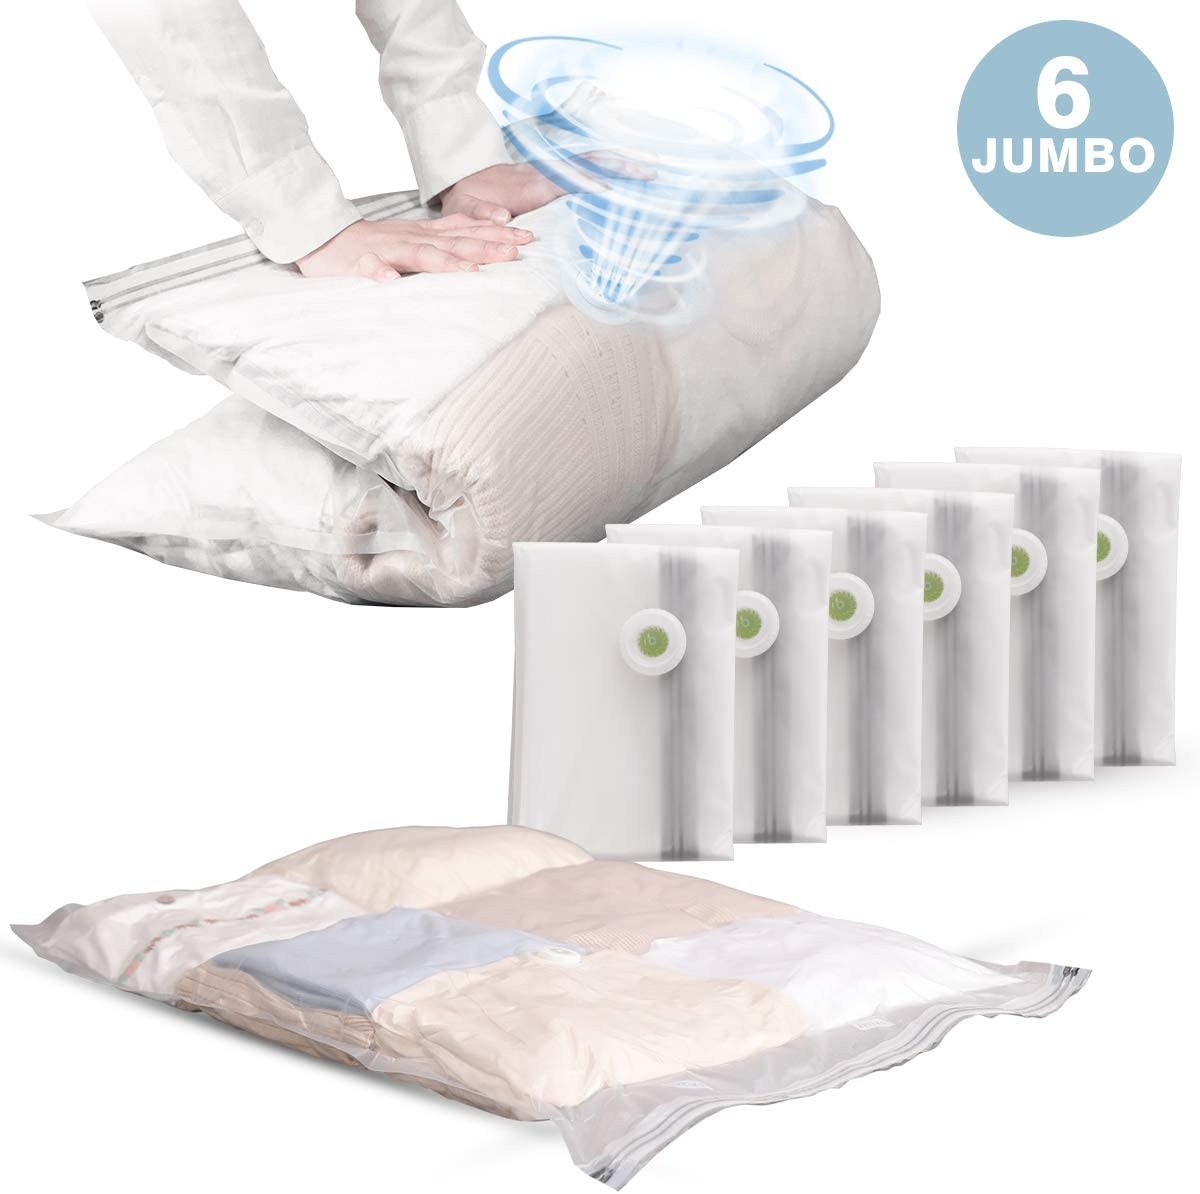 Vacuum Storage Bags Sealer Bags for Clothes Space Saving 6 Pack Jumbo Size 32x 39 for Home Travel Organizing Frosted No Vacuum /& Pump Needed LEVERLOC Space Saver Bags